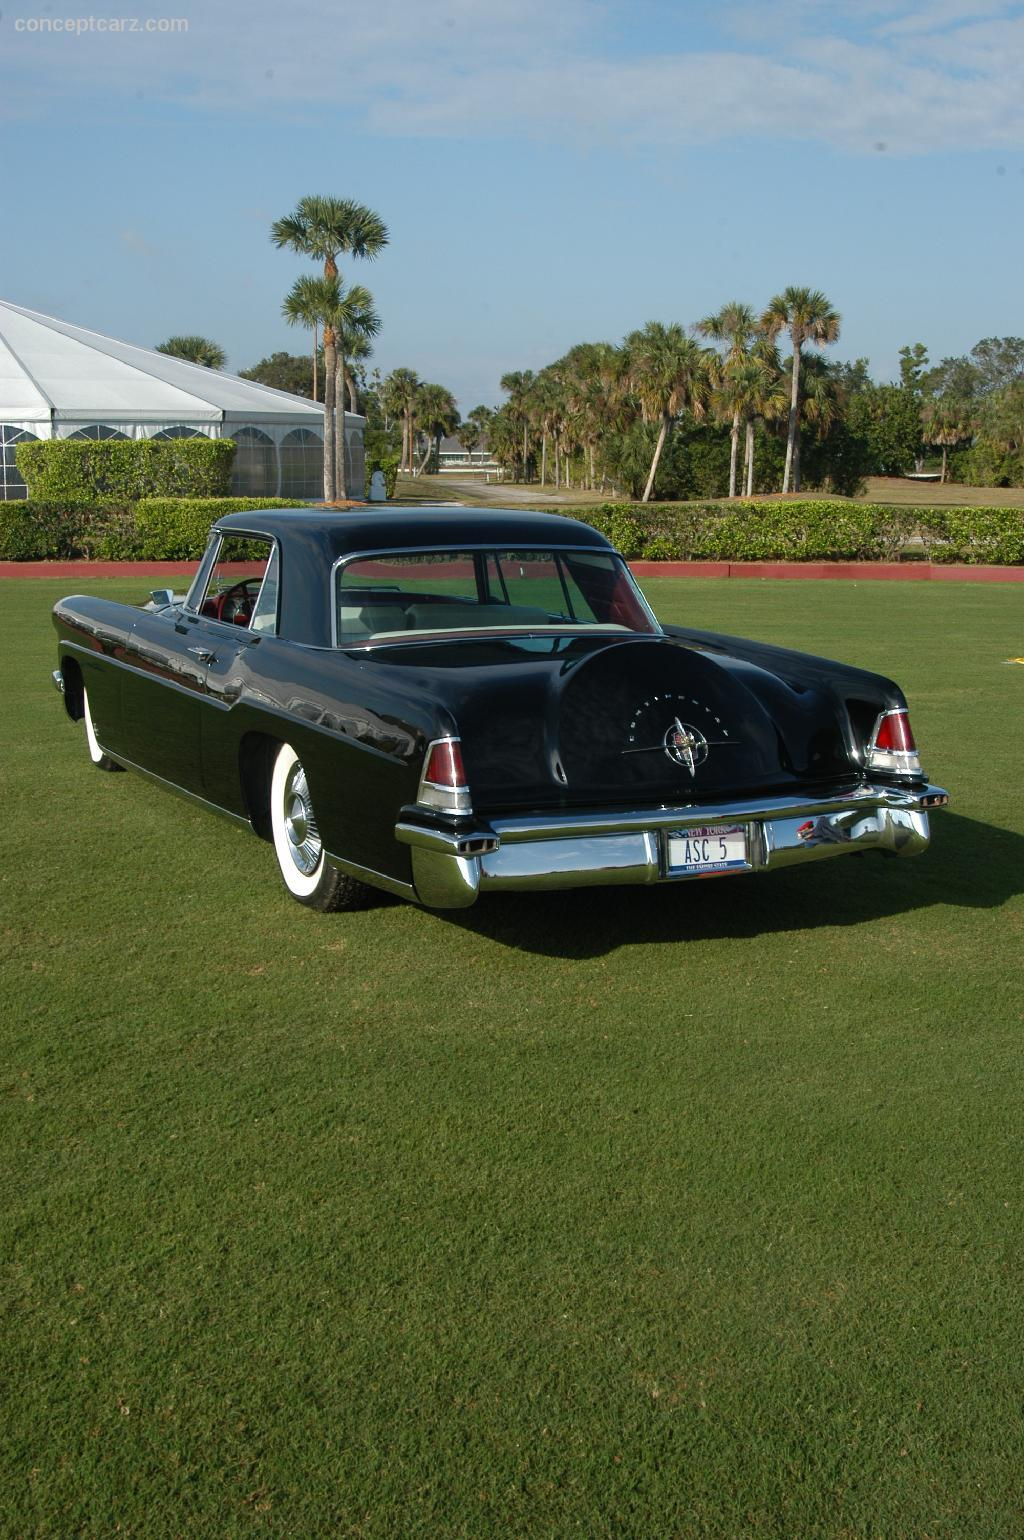 1957 lincoln continental mark ii at the palm beach international concours d 39 elegance. Black Bedroom Furniture Sets. Home Design Ideas